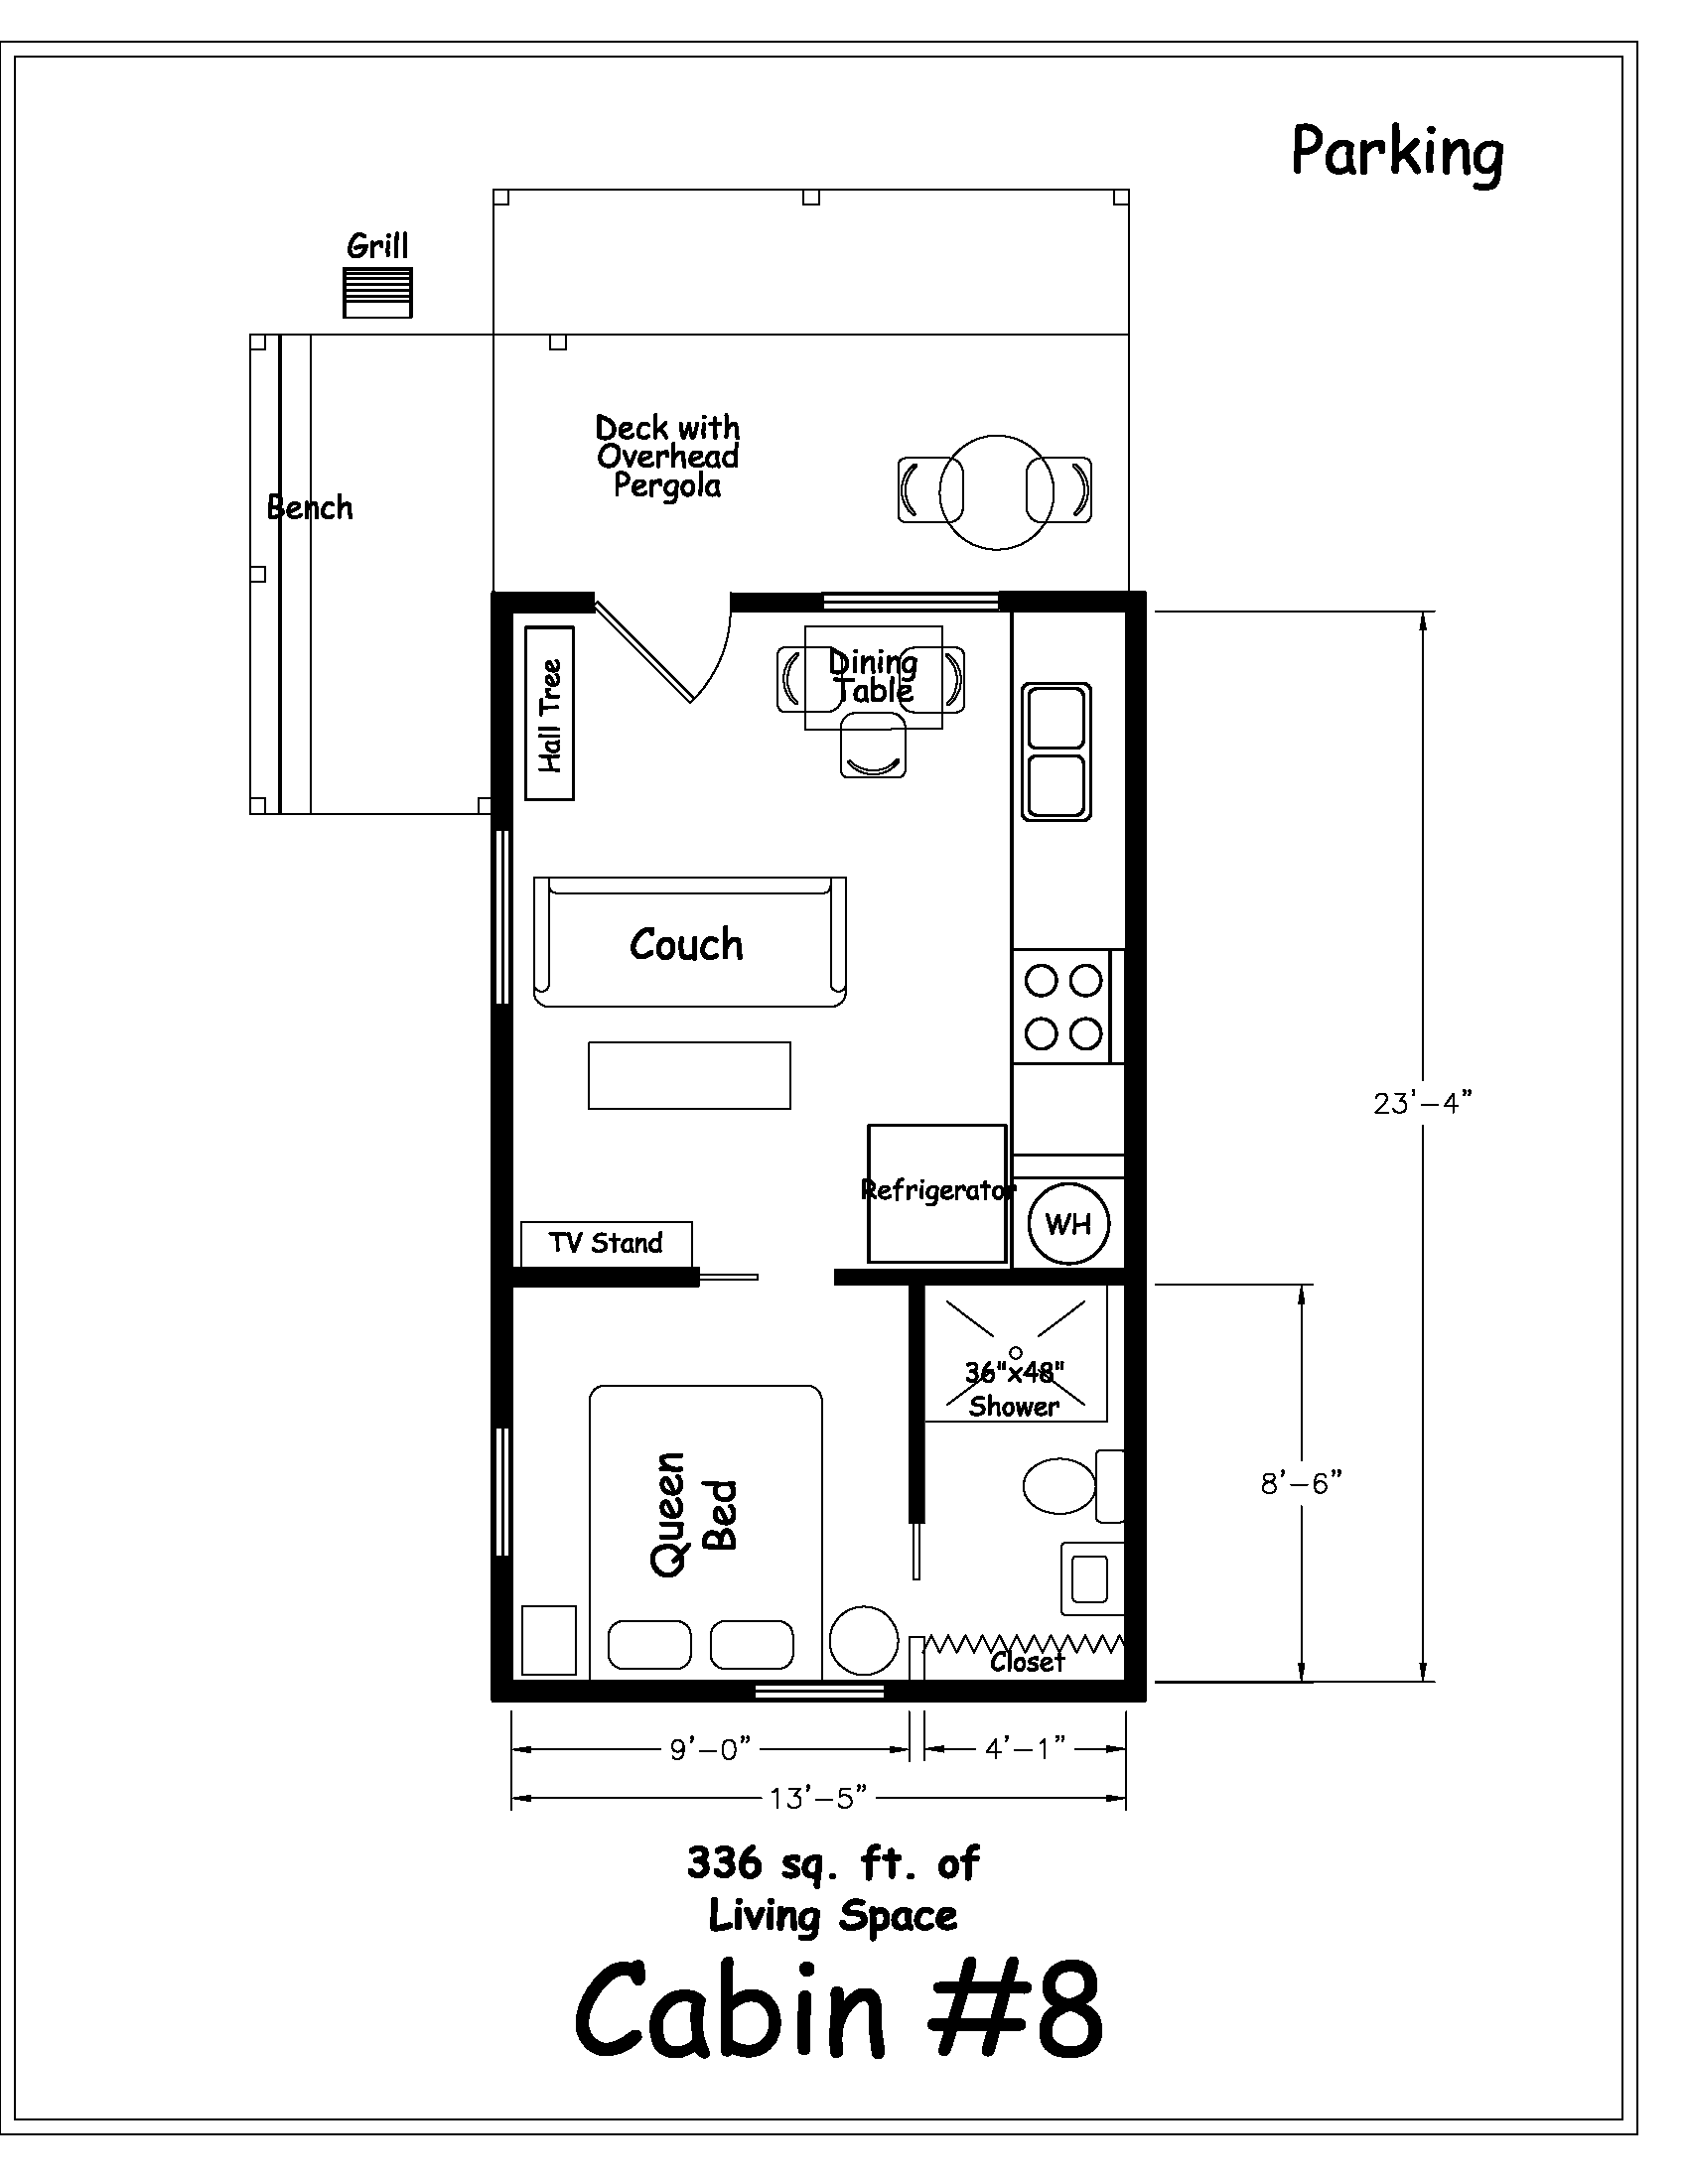 Hunting Cabin Plans Archer S Poudre River Resort Cabin 8